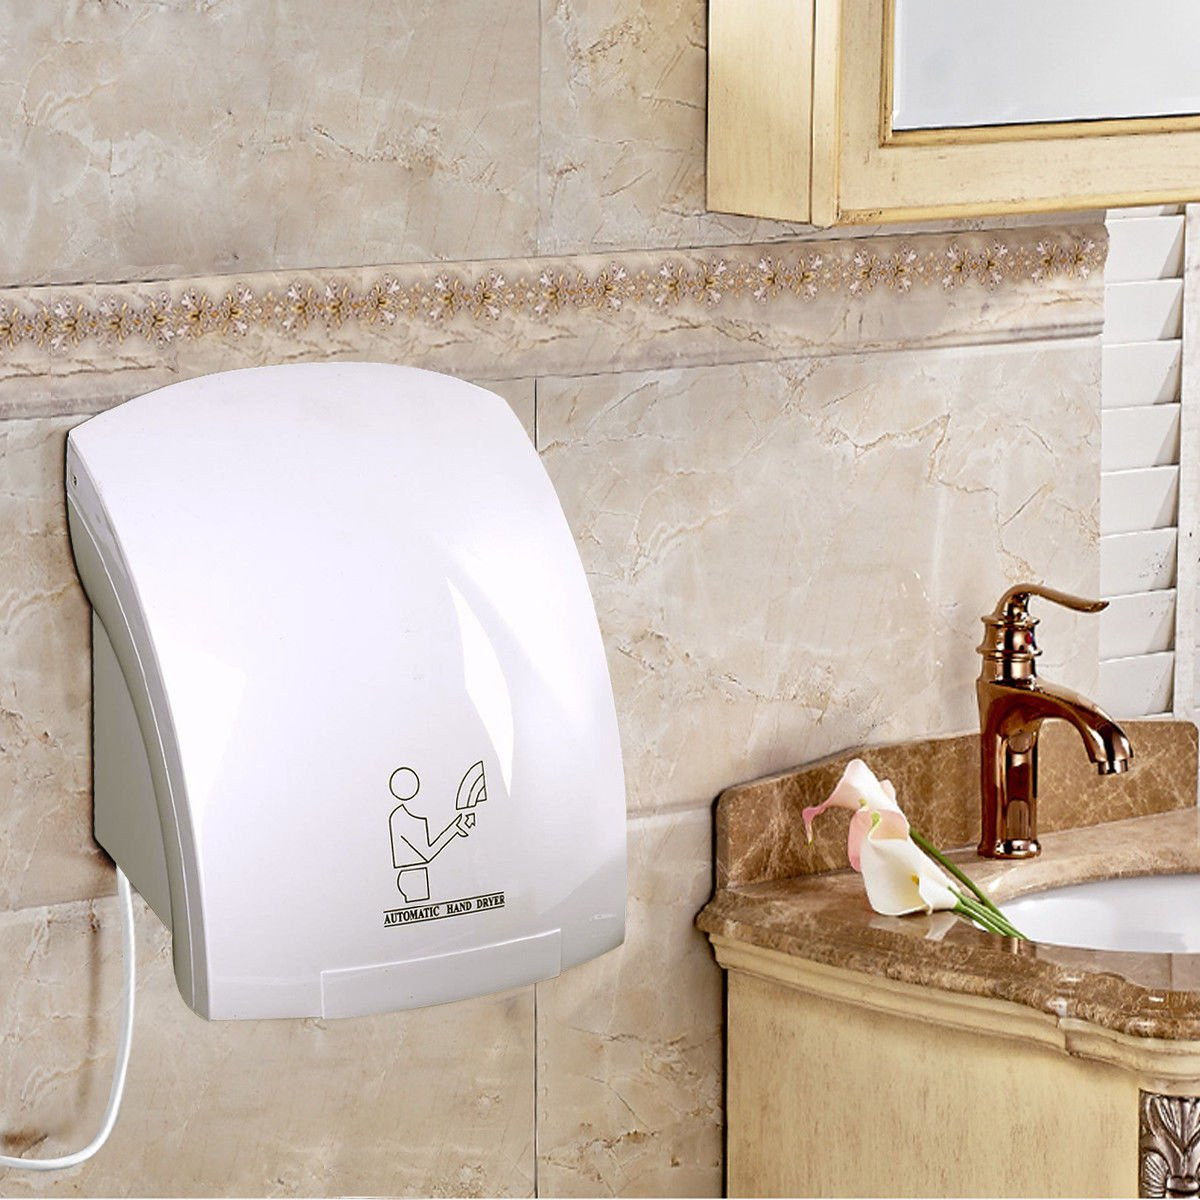 Hand Dryers for Toilets, Wall Mounted Hand Dryer Commercial, Automatic Electric Hand Dryer, Warm Air Dryer Heavy Duty WAF